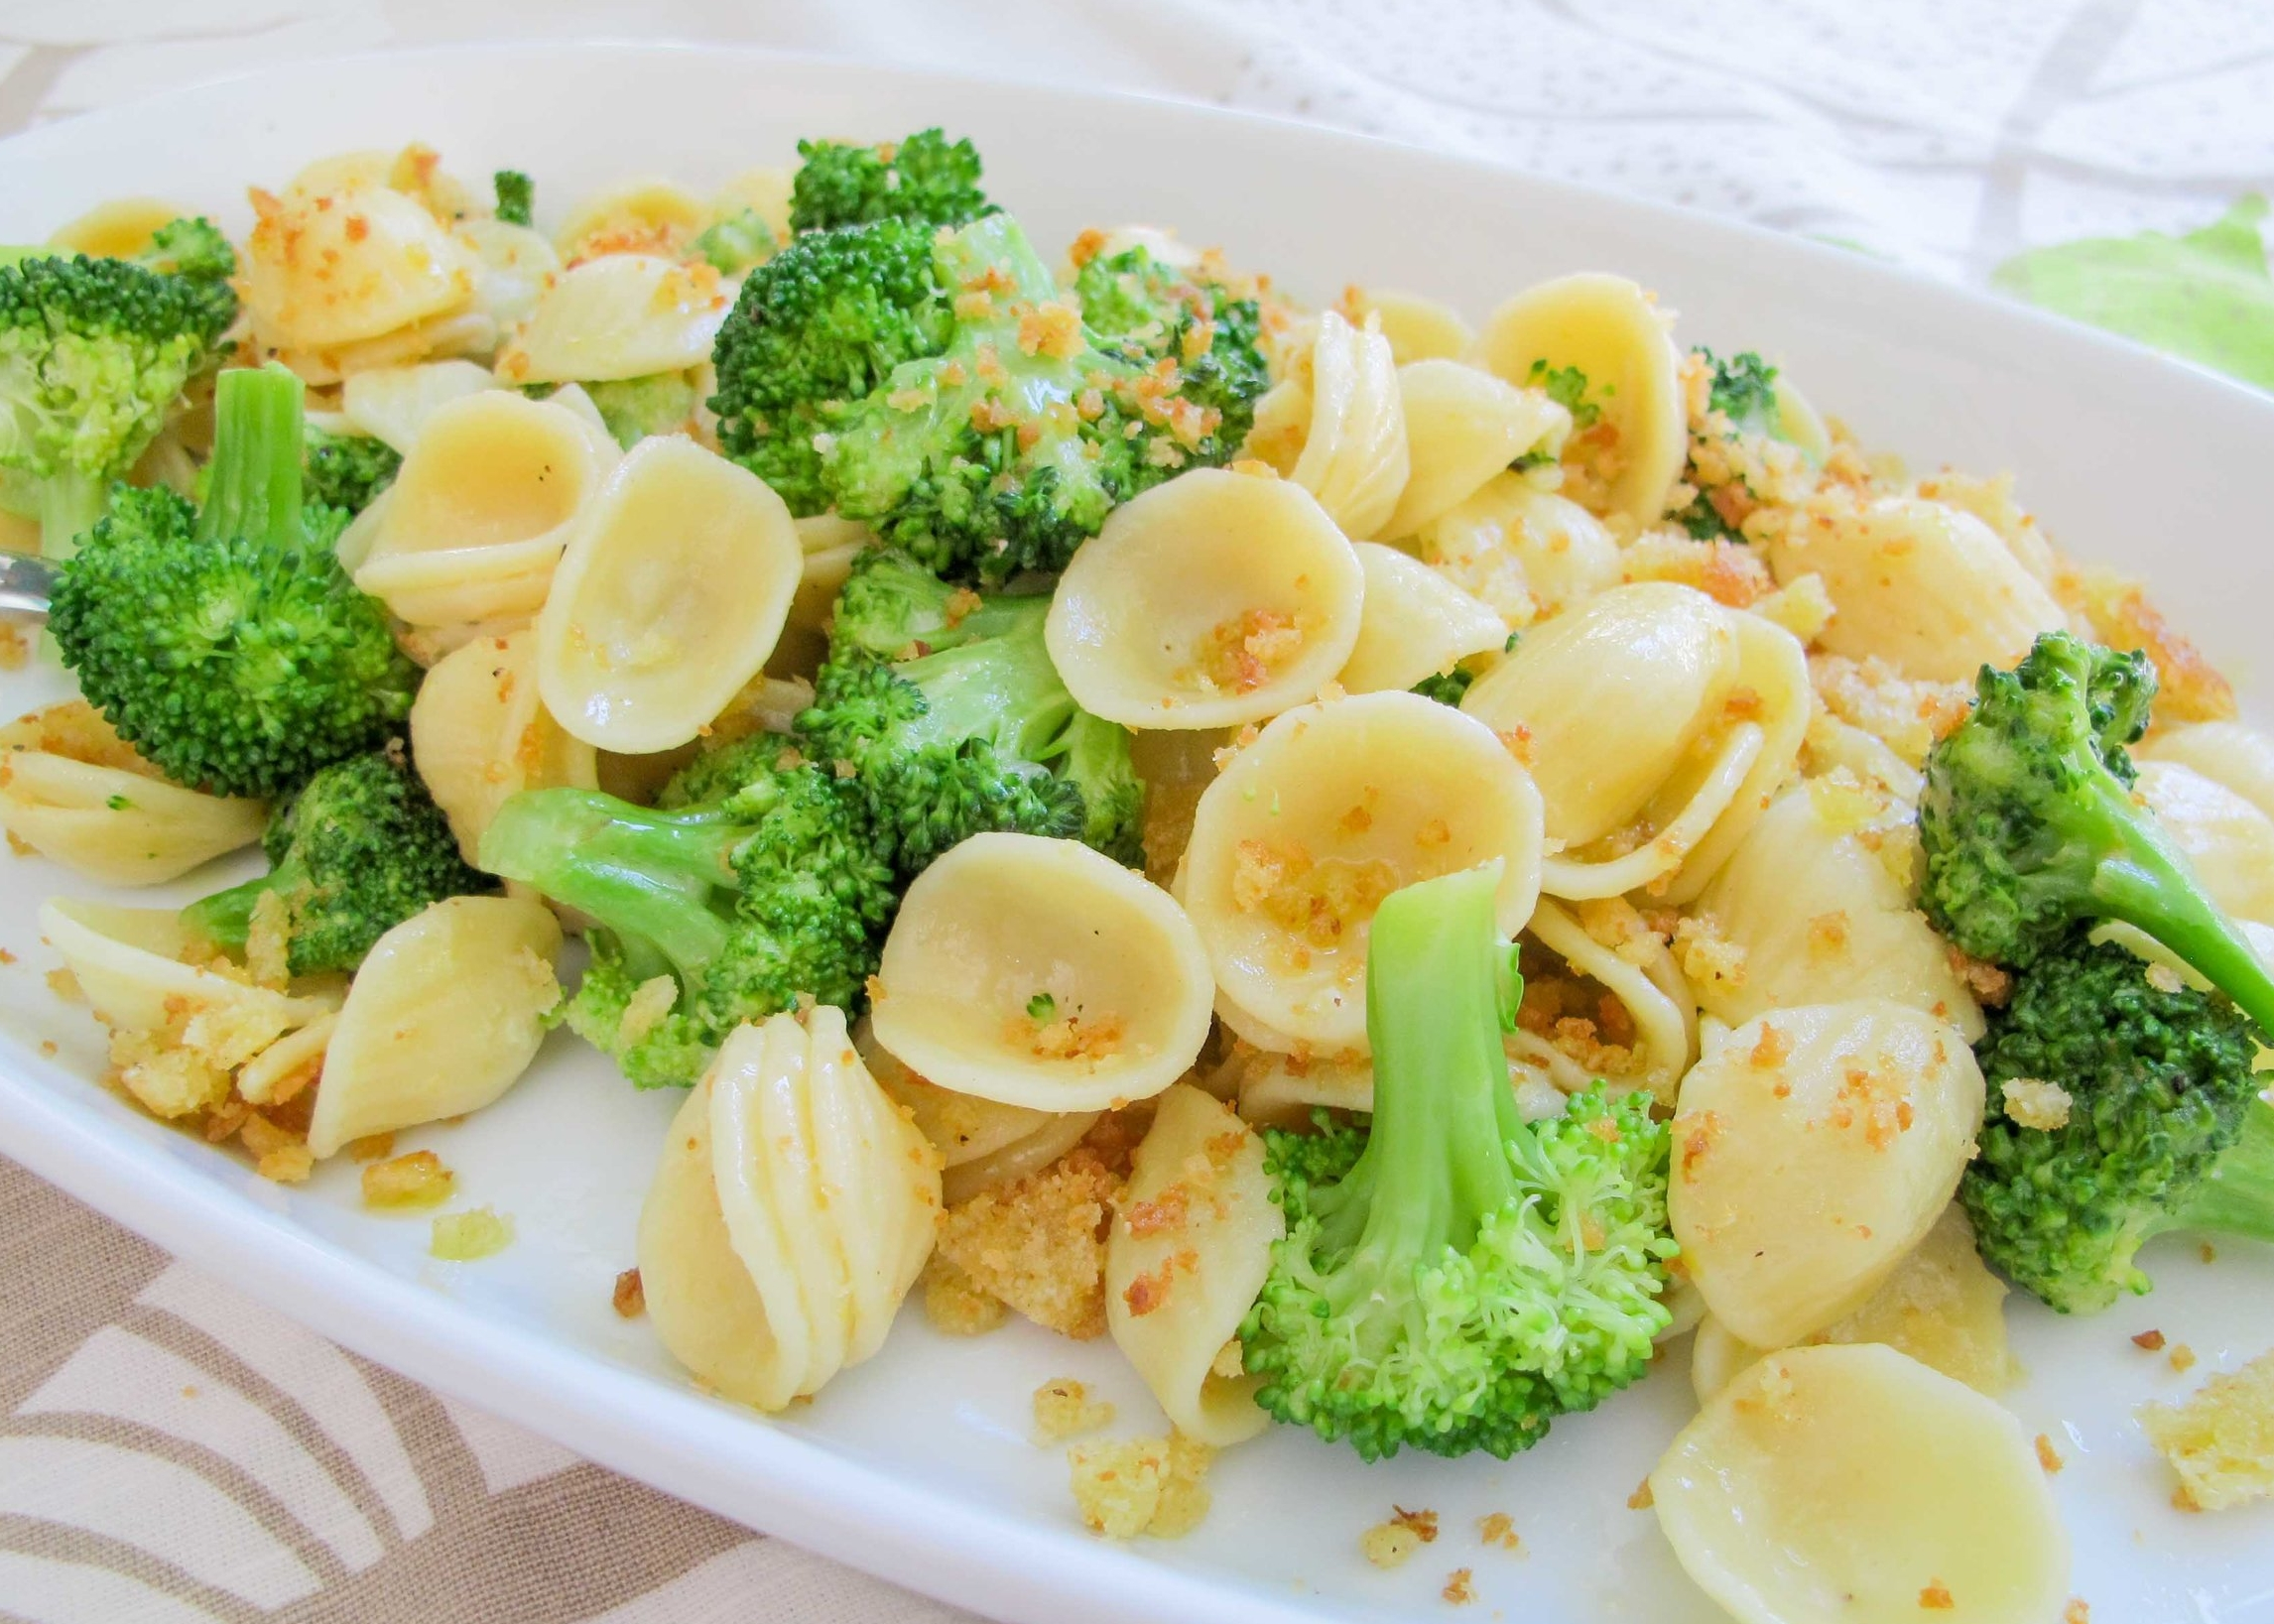 orecchiette with roasted broccoli